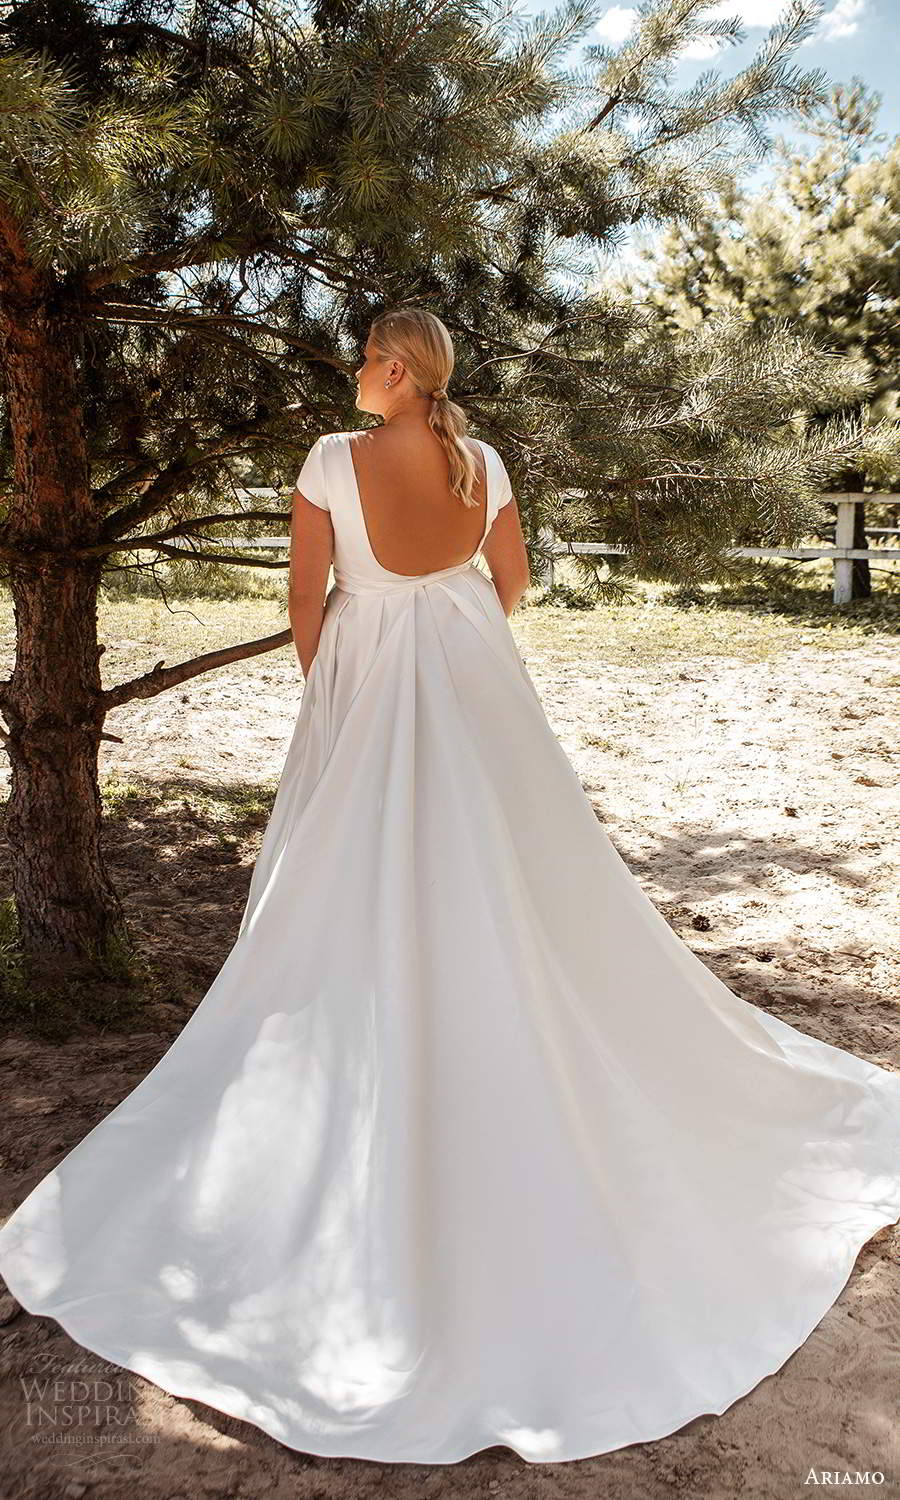 ariamo 2021 plus bridal short sleeve bateau neckline clean minimalist a line ball gown wedding dress chapel train (7) bv